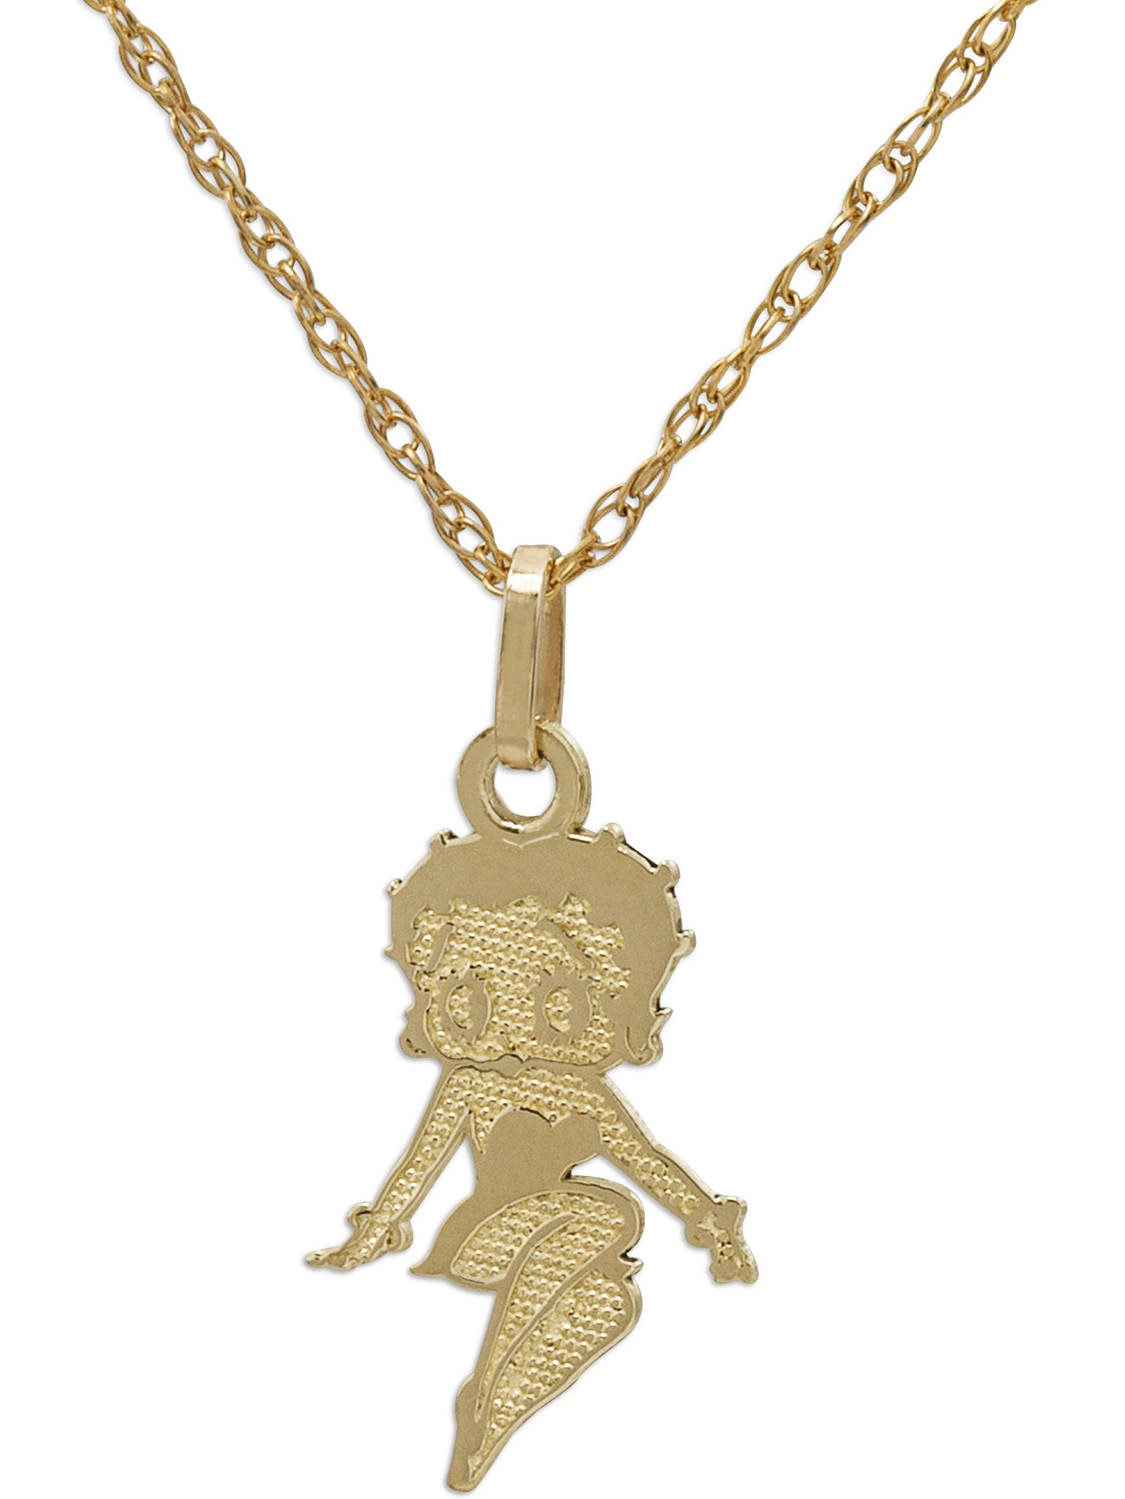 Betty Boop 10kt Yellow Gold Betty Boop Pendant with GoldFilled